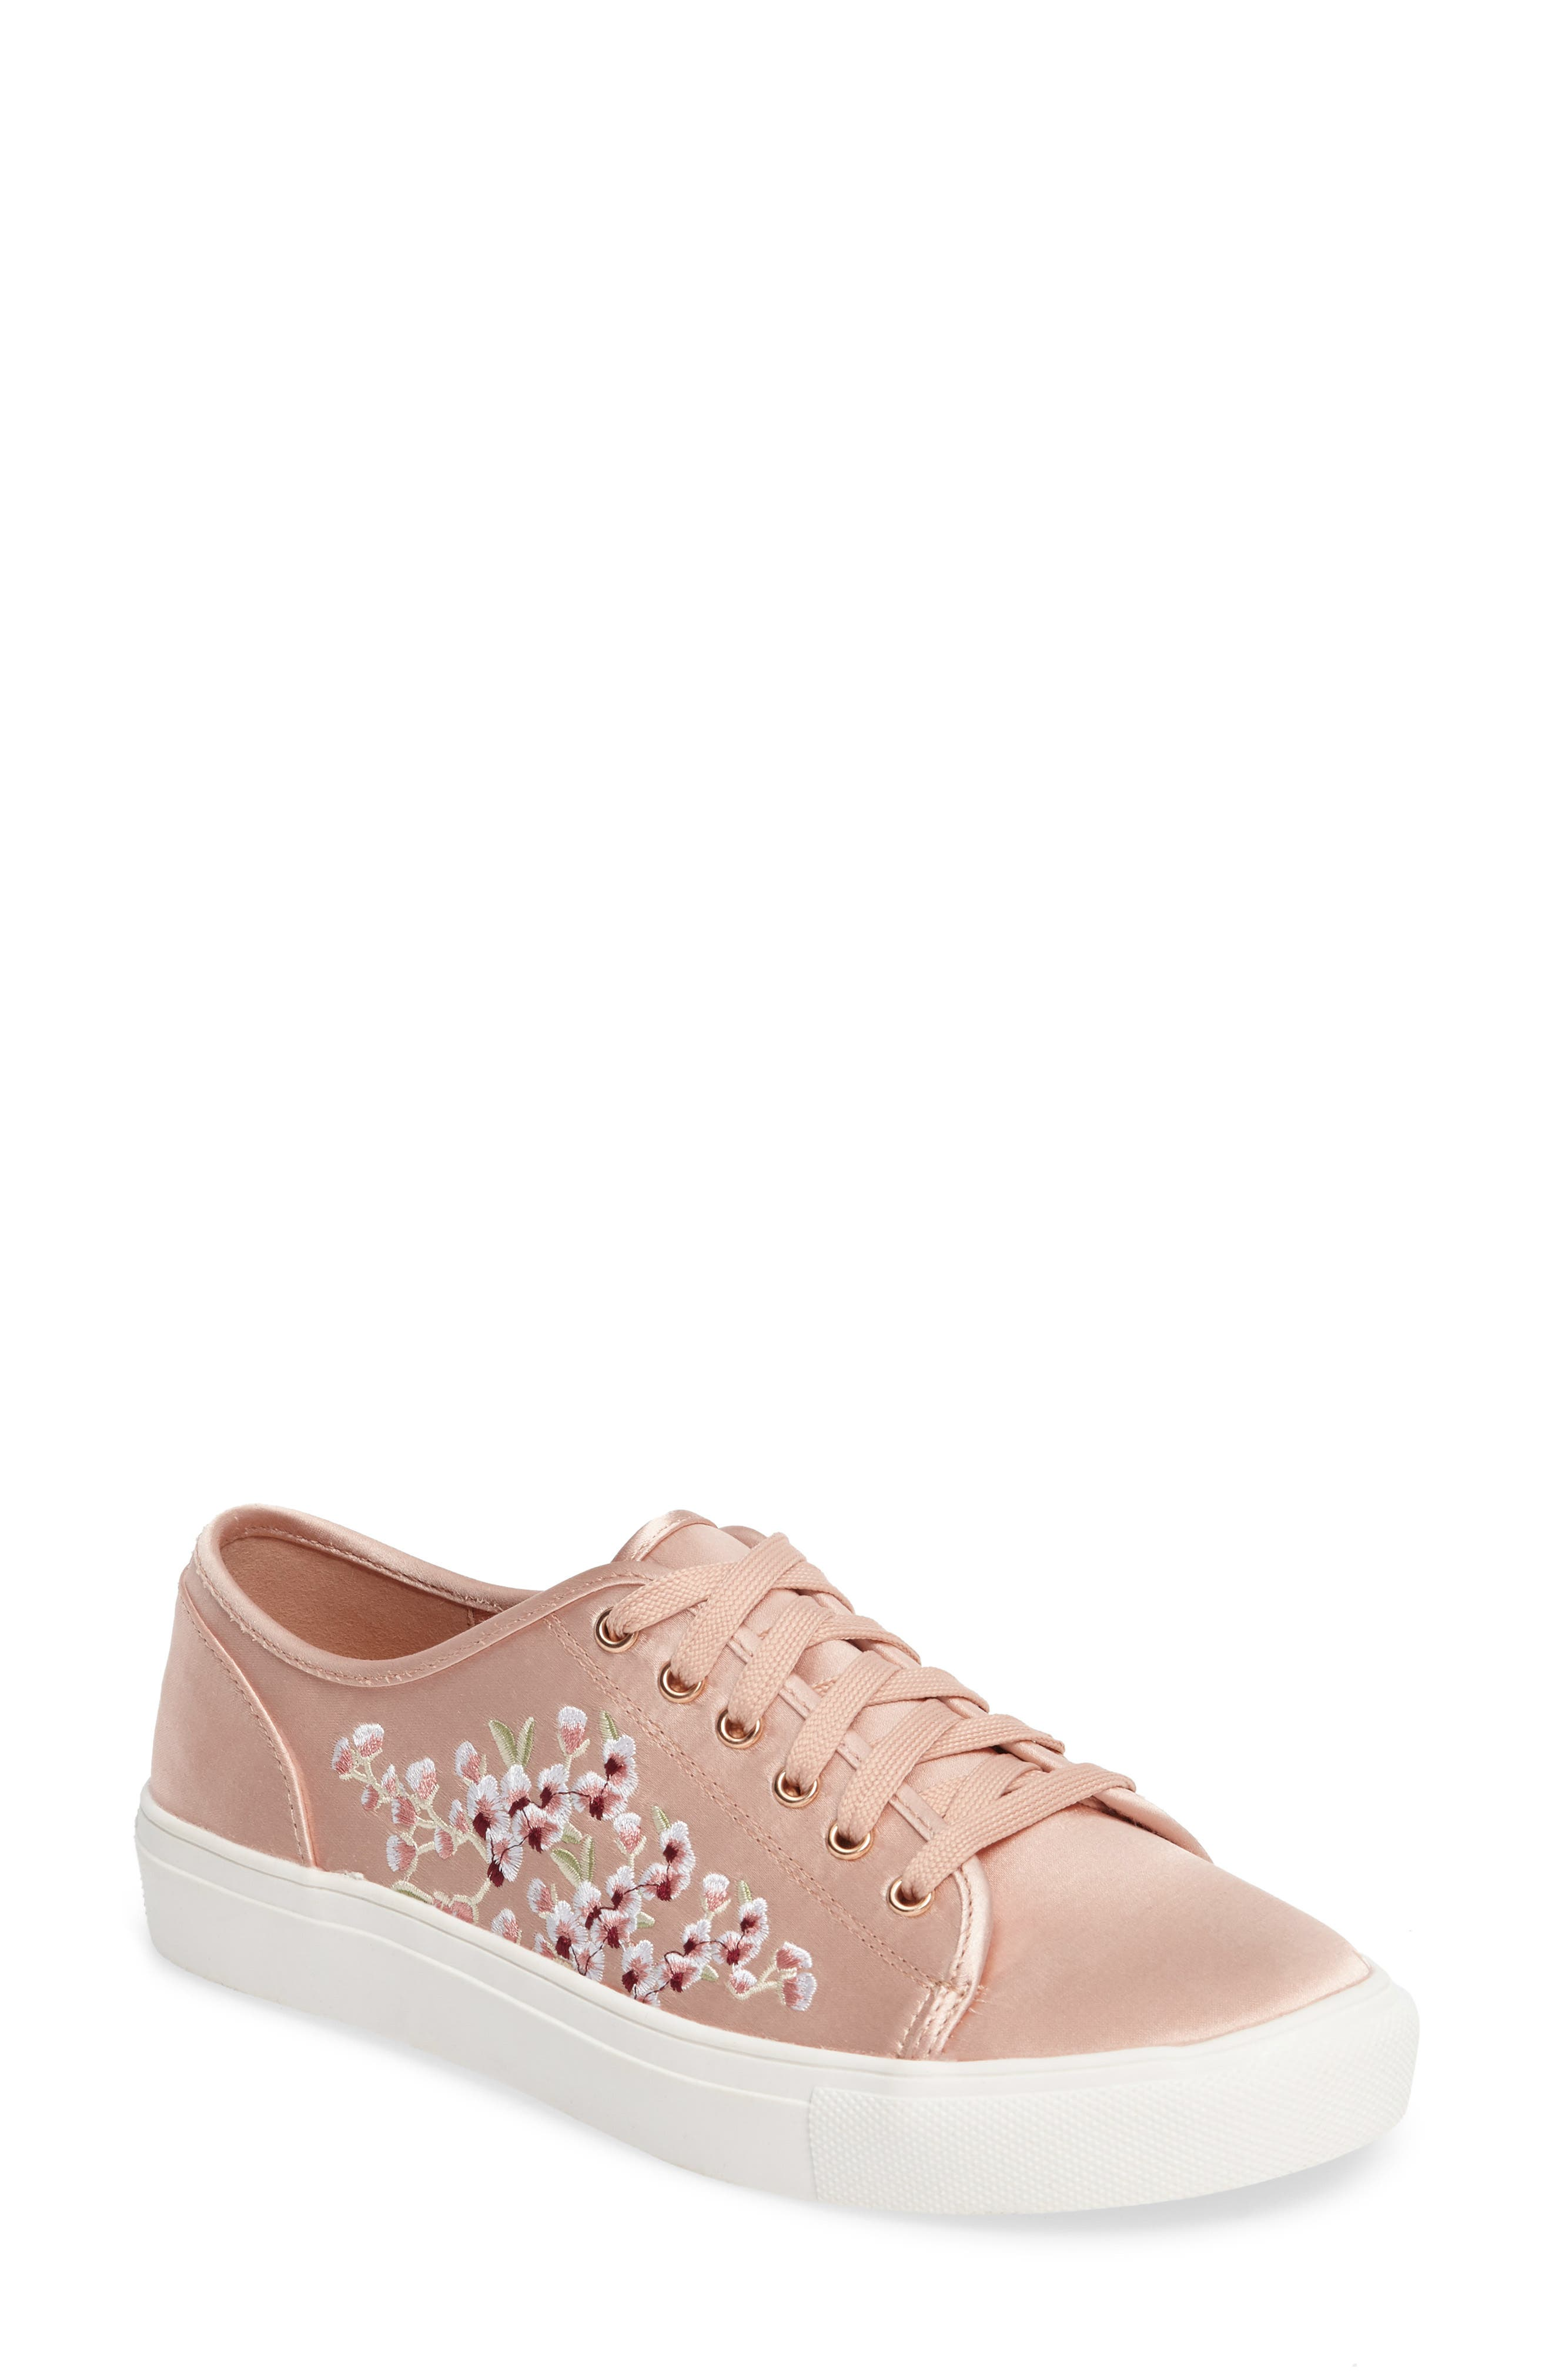 Main Image - Topshop Cupid Embroidered Sneaker (Women)